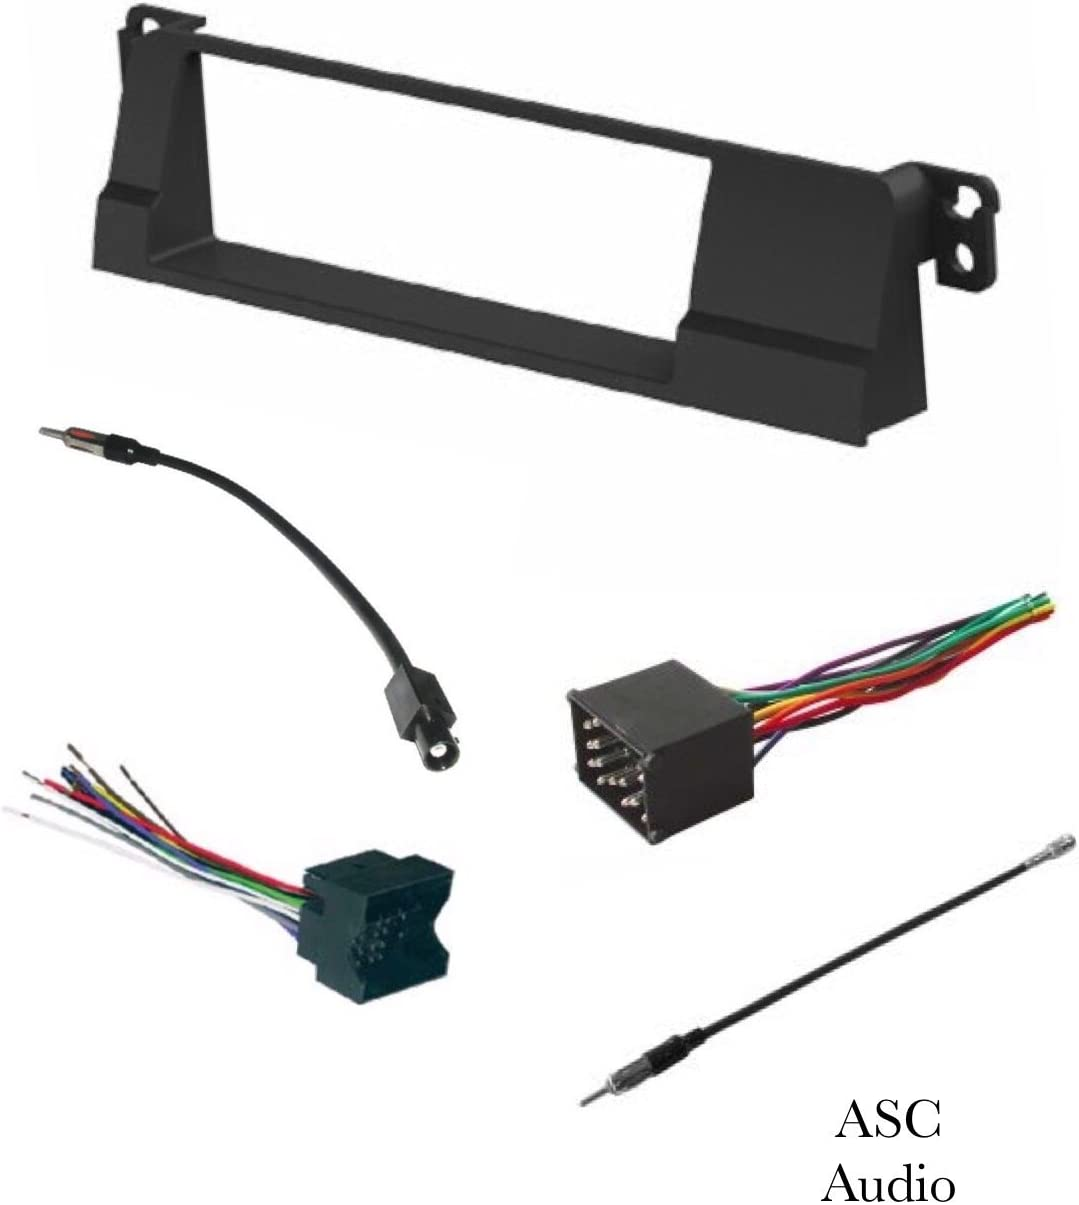 Amazon.com: ASC Car Stereo Install Dash Kit, Wire Harness, and ... car stereo wire connectors Amazon.com